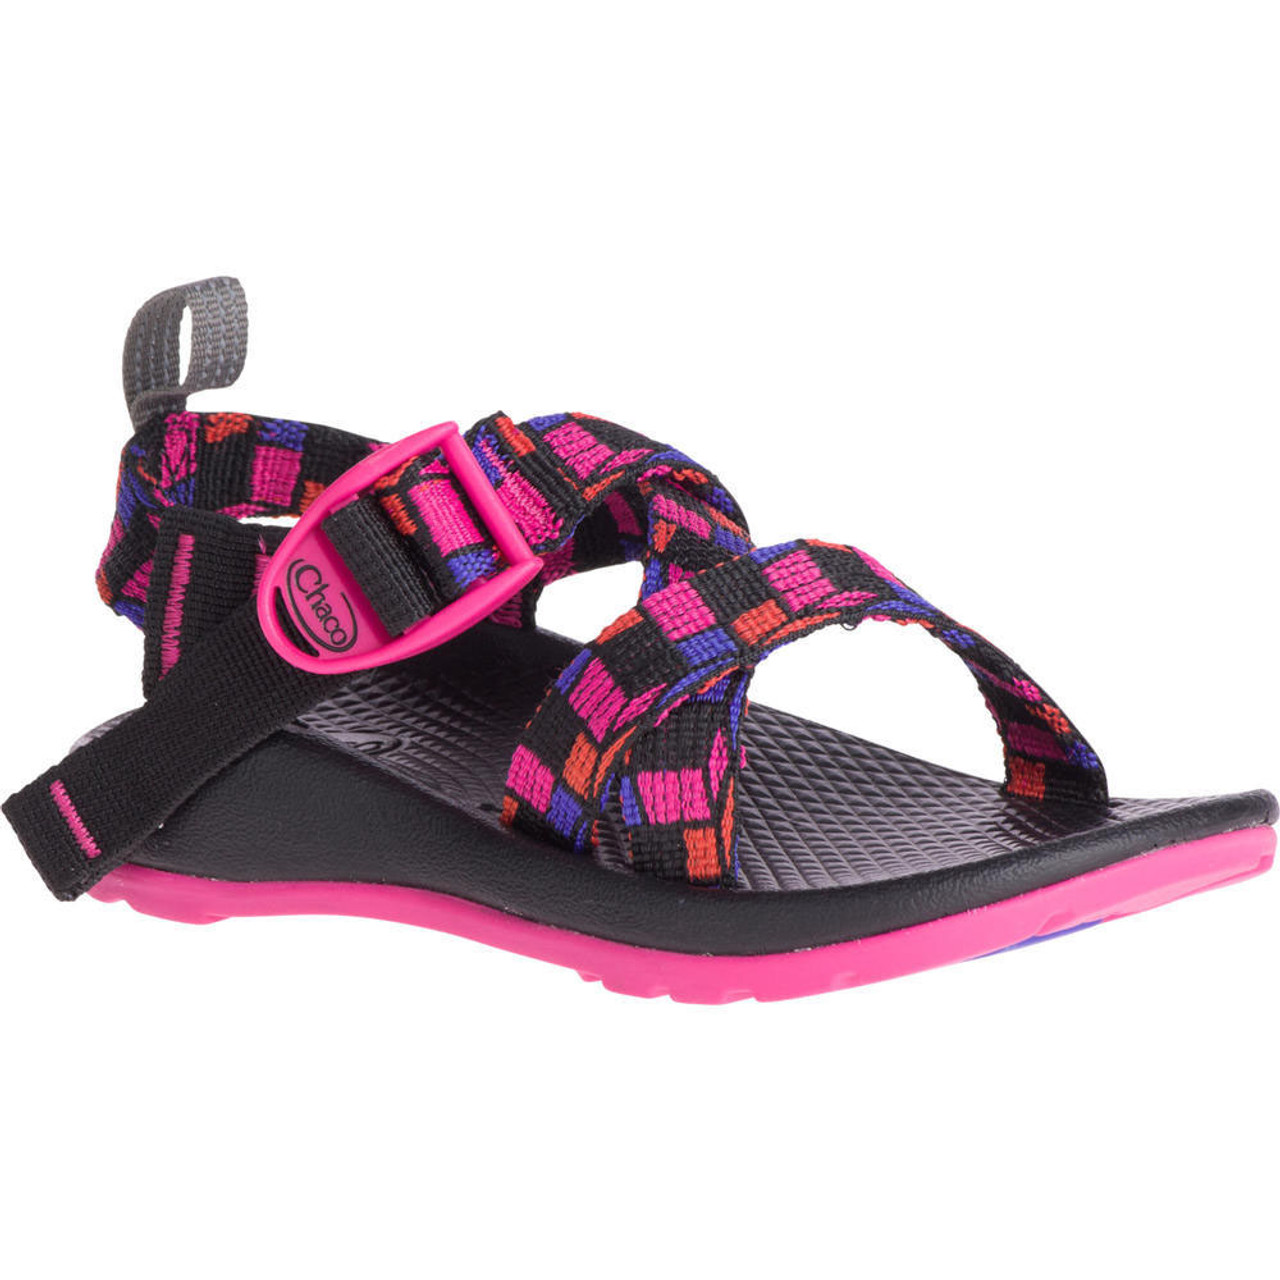 022f7c7cacbc Chaco Kid s Sandal - Z 1 Kids - Cubit Magenta - Surf and Dirt